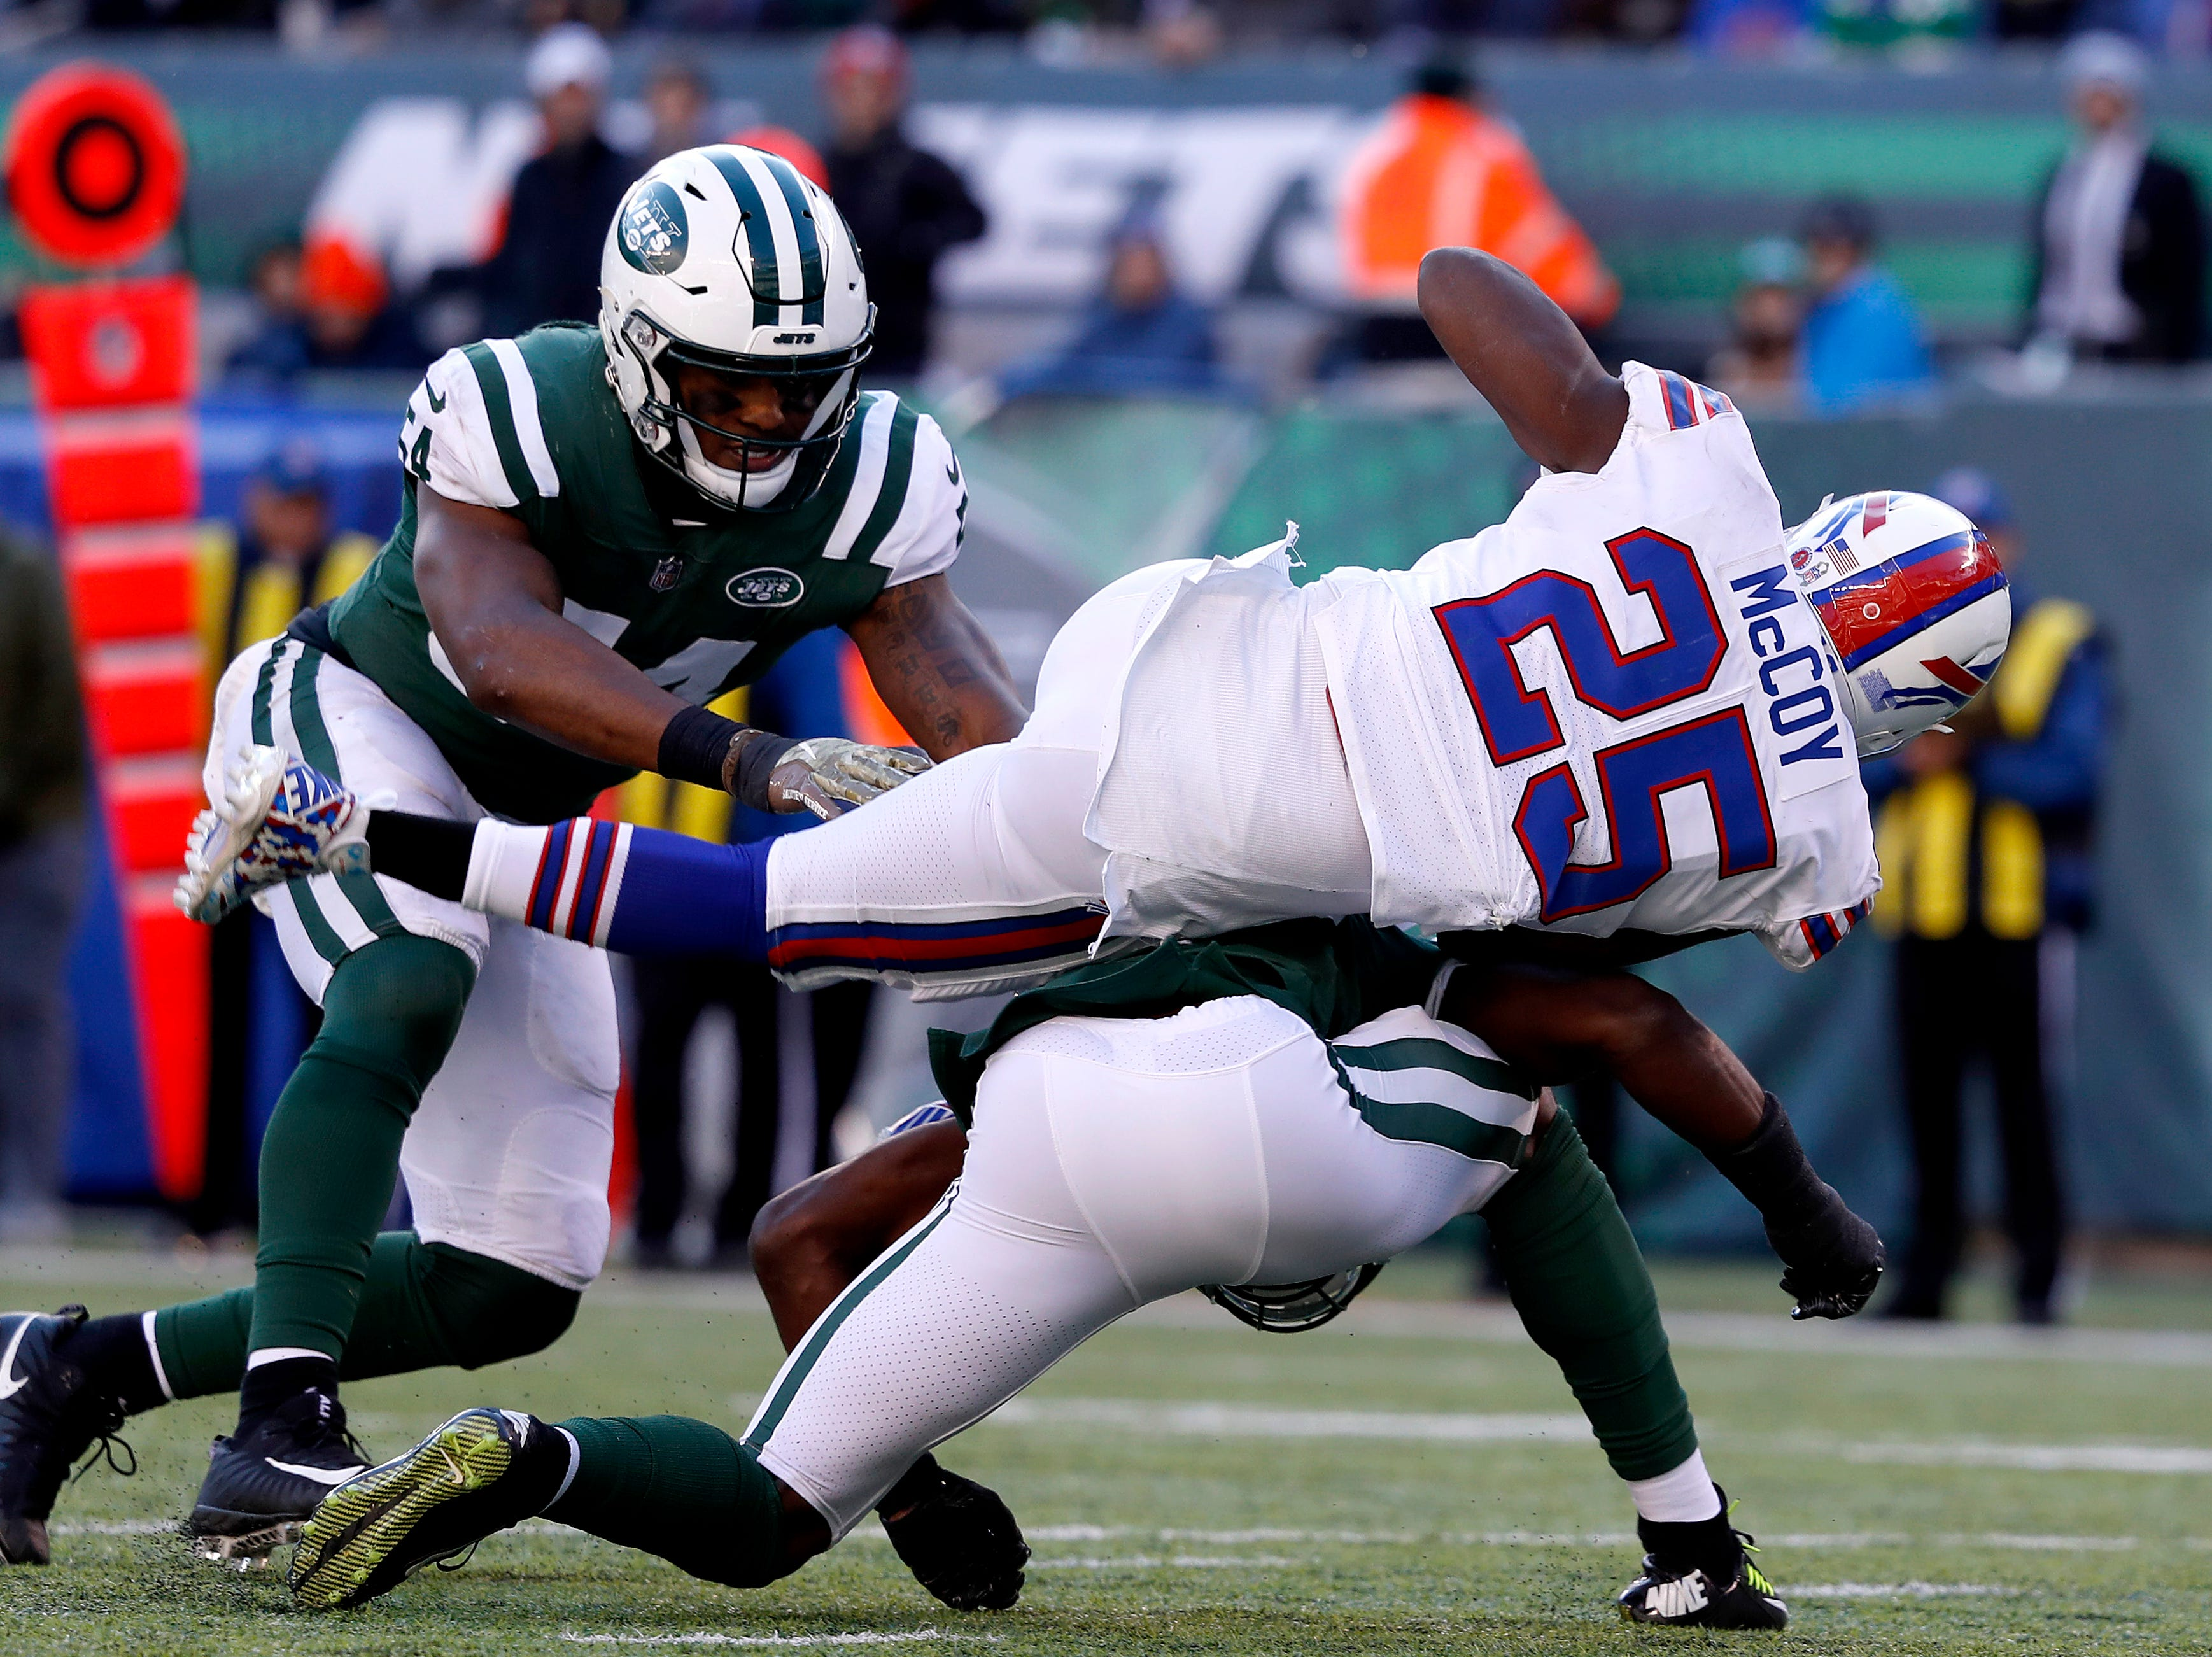 EAST RUTHERFORD, NEW JERSEY - NOVEMBER 11: LeSean McCoy #25 of the Buffalo Bills dives foward against the New York Jets during the second quarter at MetLife Stadium on November 11, 2018 in East Rutherford, New Jersey. (Photo by Michael Owens/Getty Images)